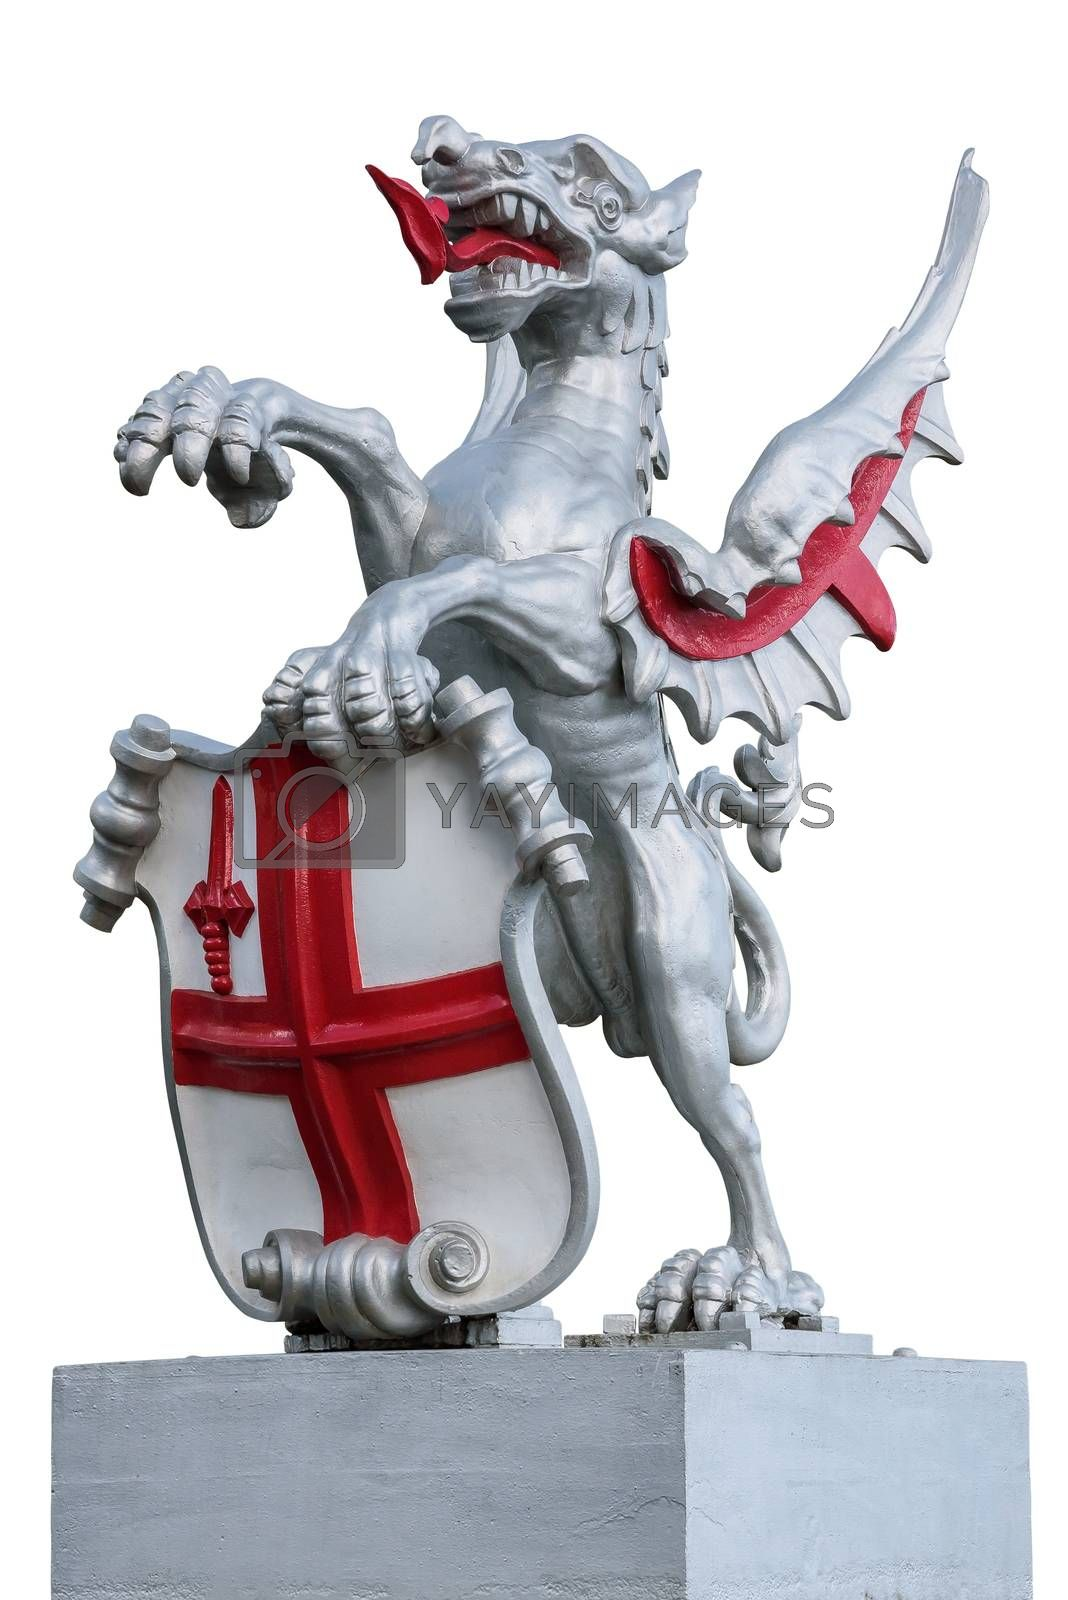 Original dragon boundary mark staute of the City of London isolated on white background with clipping path